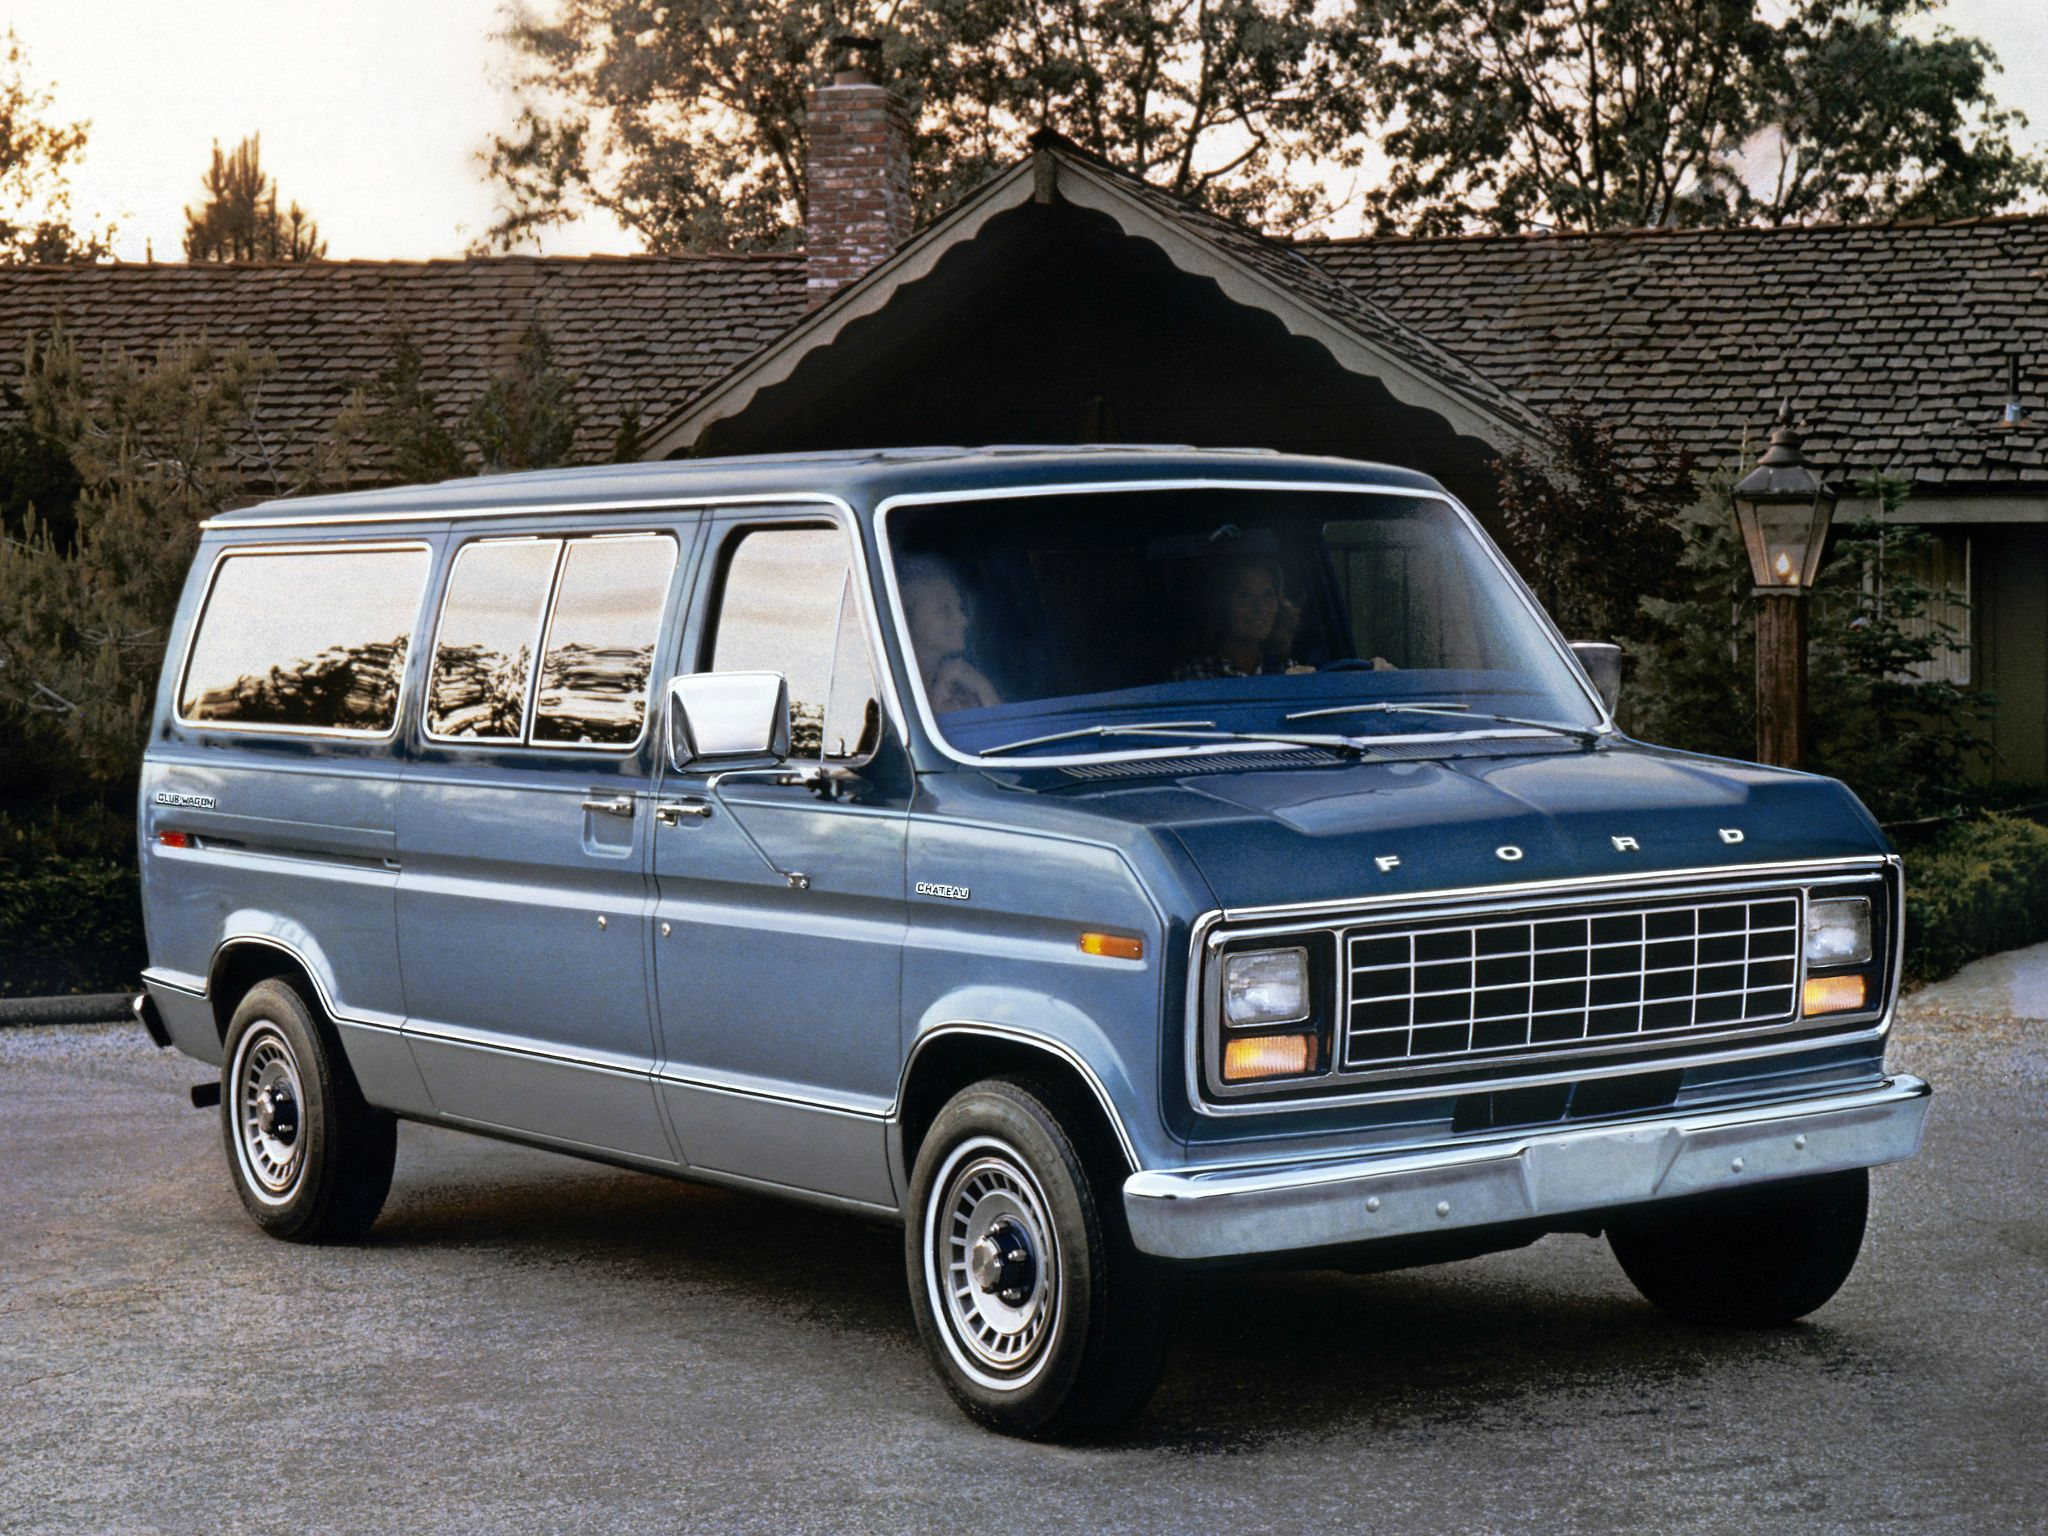 1980 Econoline Van Family Transportation Ford Van Wagon